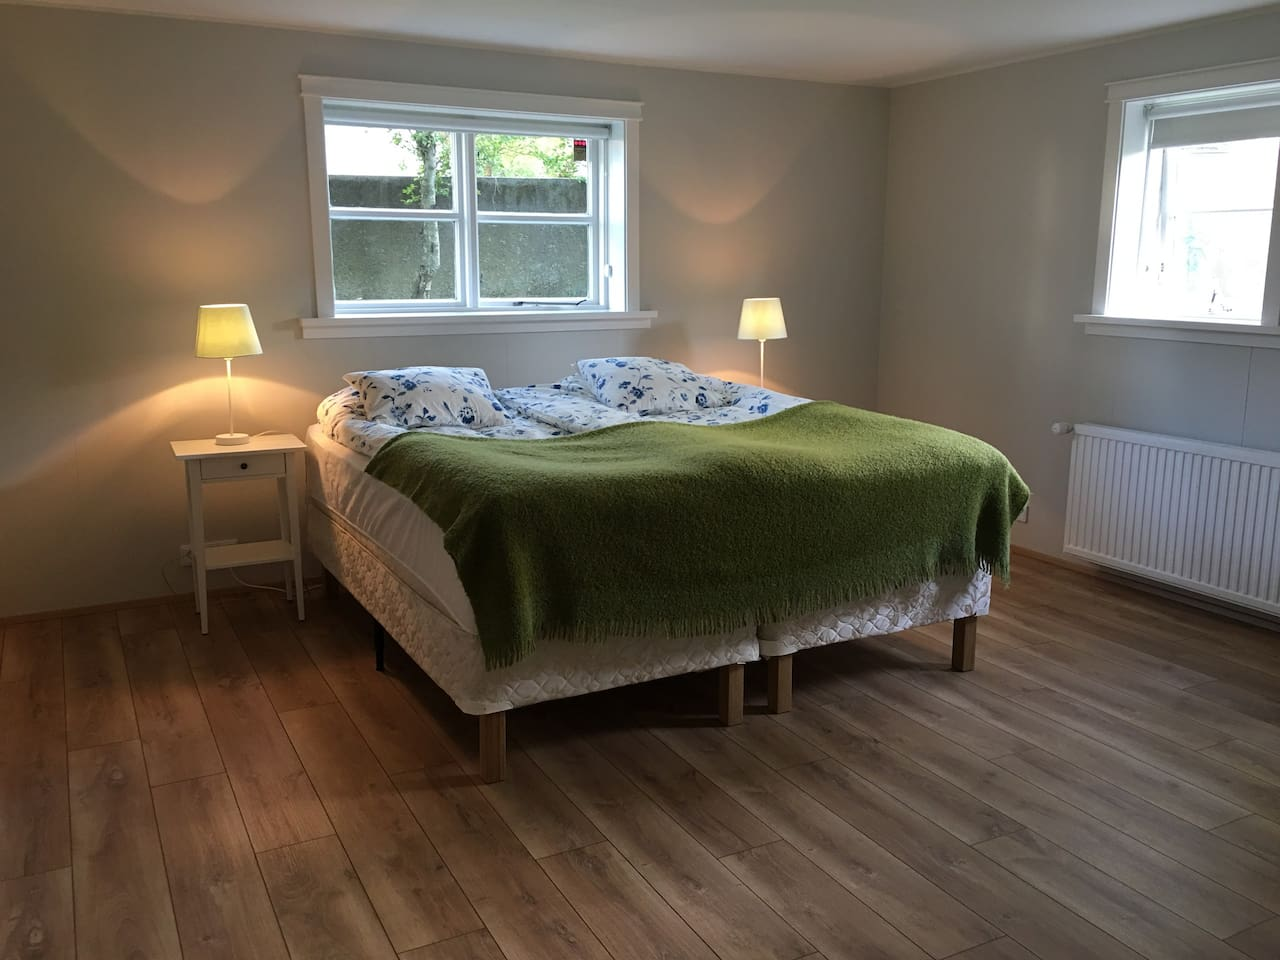 Bright and roomy bedroom with three windows